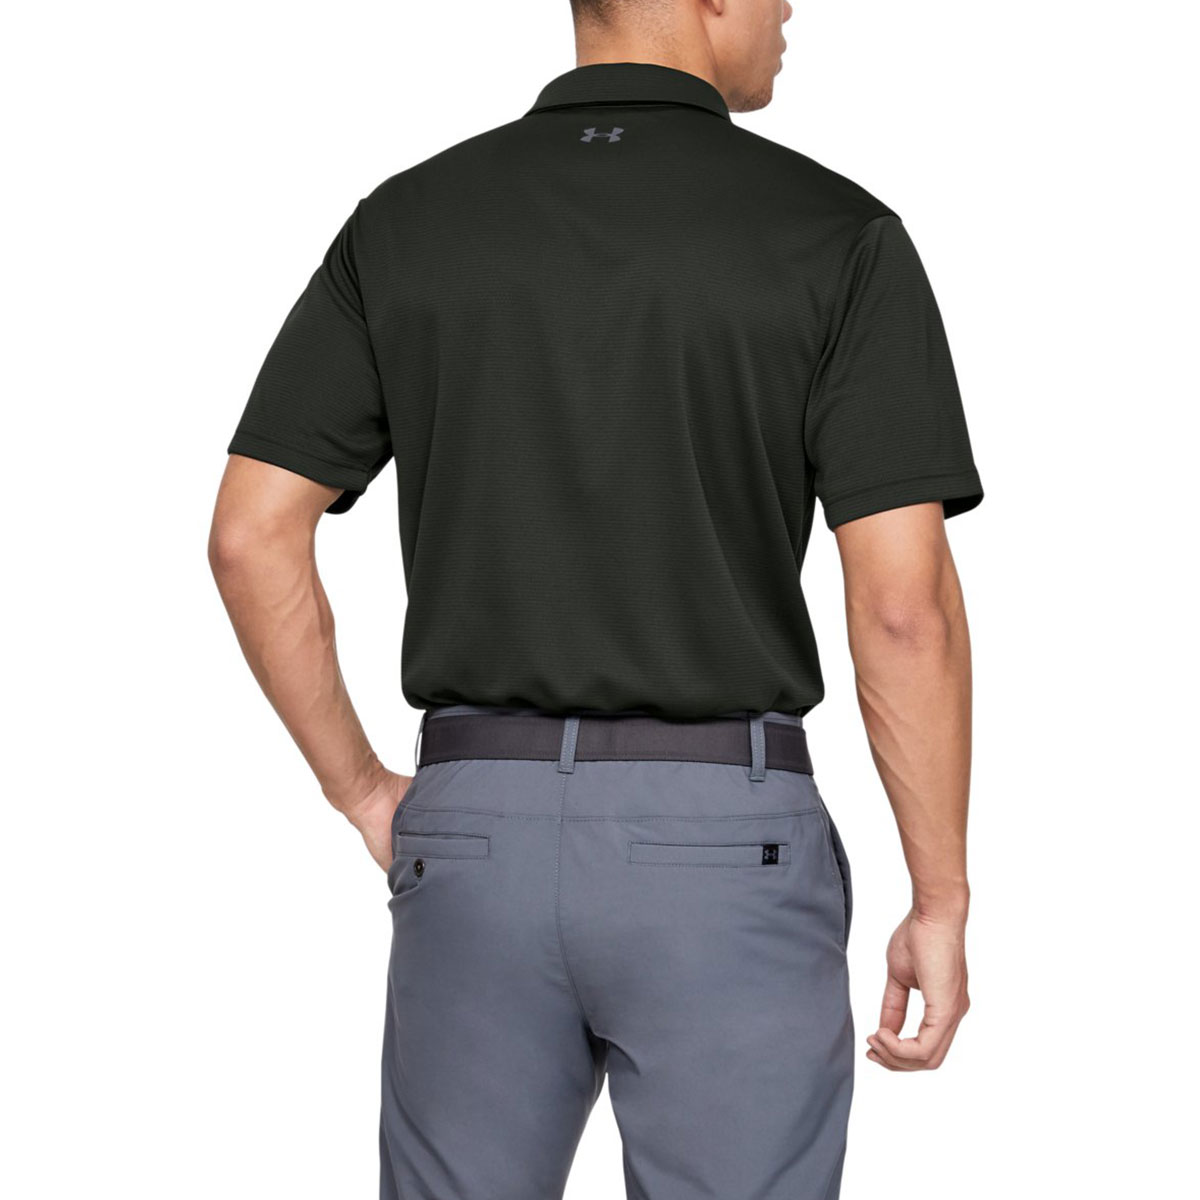 Under-Armour-Mens-Golf-Tech-Wicking-Textured-Soft-Light-Polo-Shirt thumbnail 9